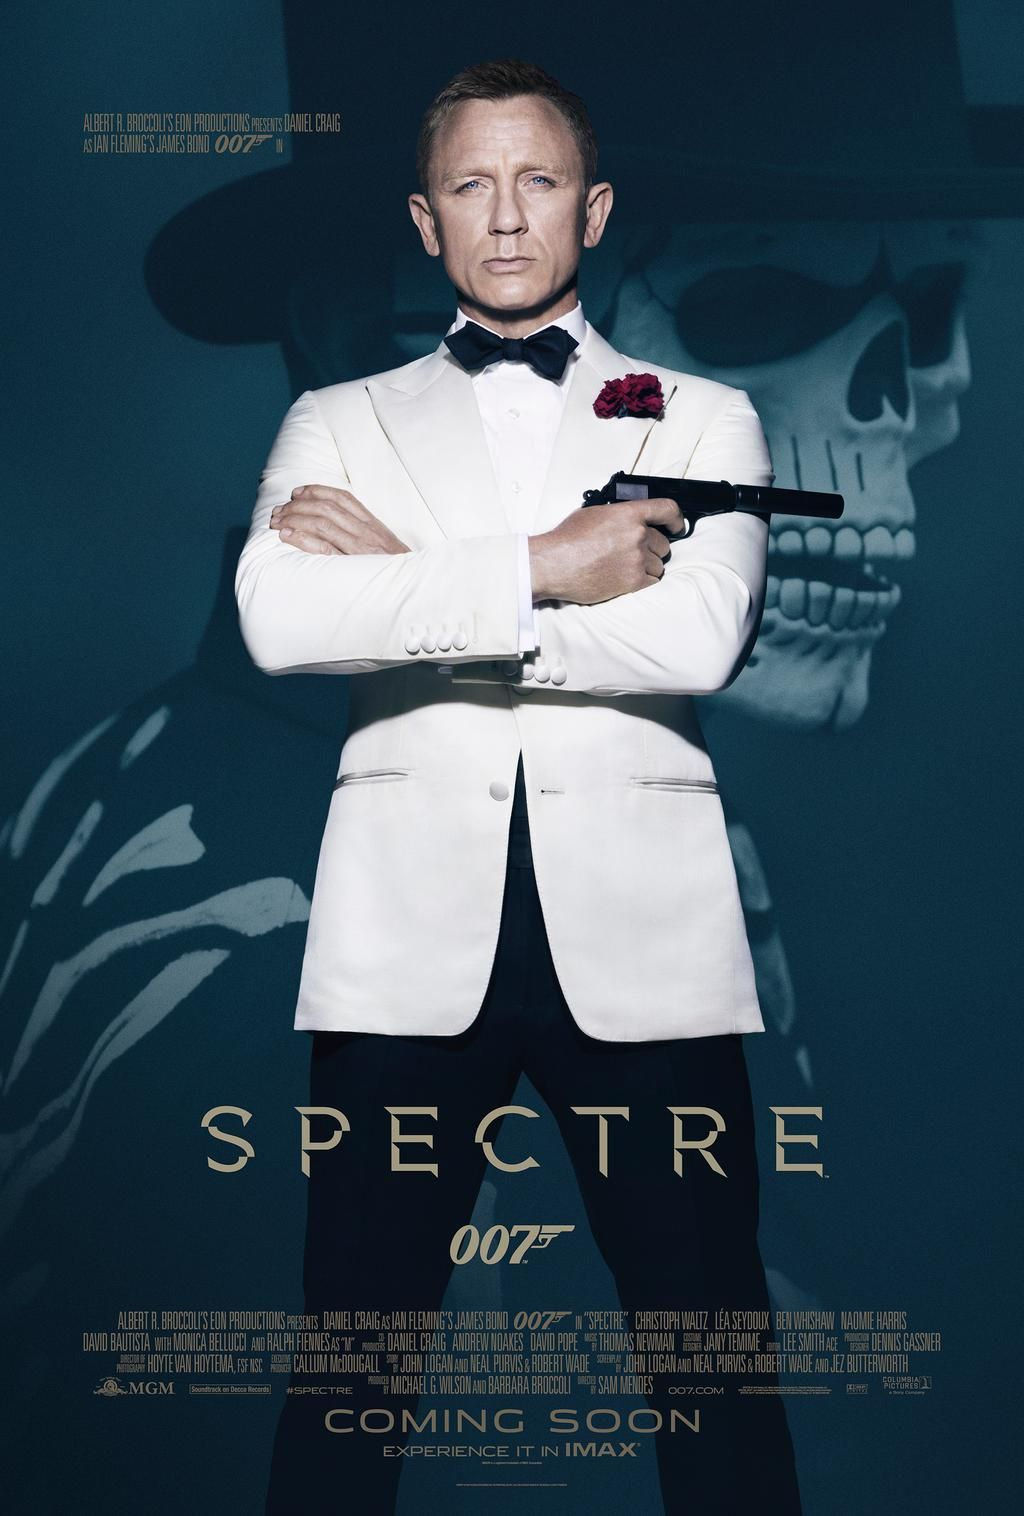 Universal Pictures On Twitter James Bond Movie Posters James Bond Movies Bond Movies